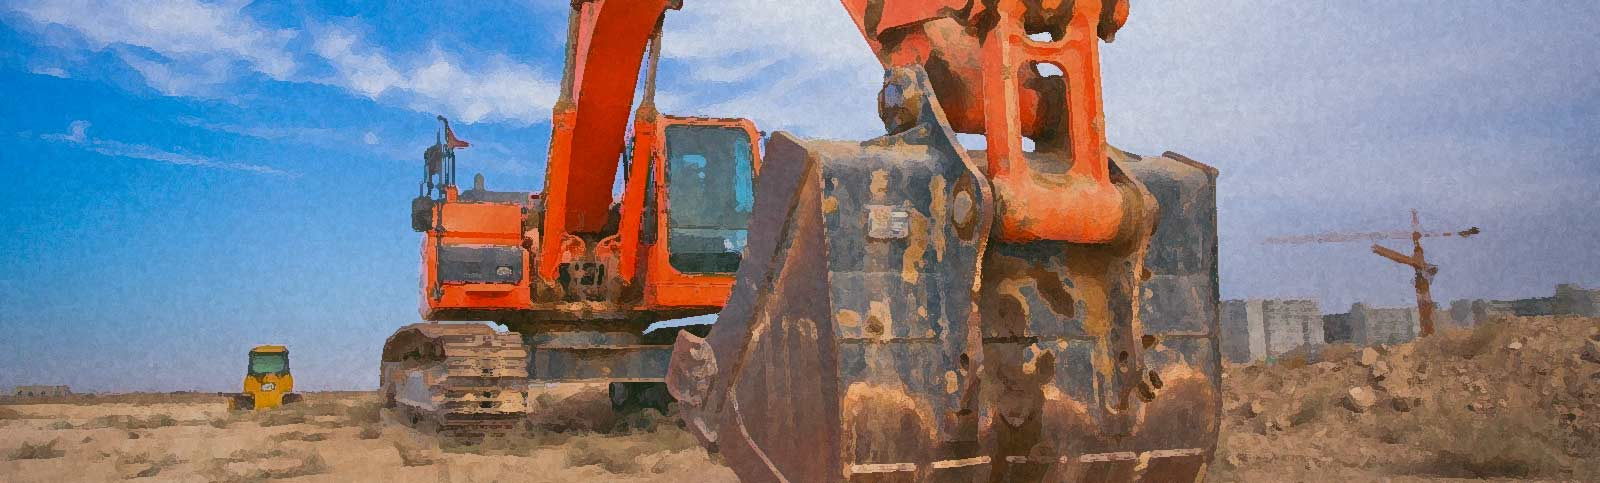 Equipment Rental: An Economical Approach to Construction